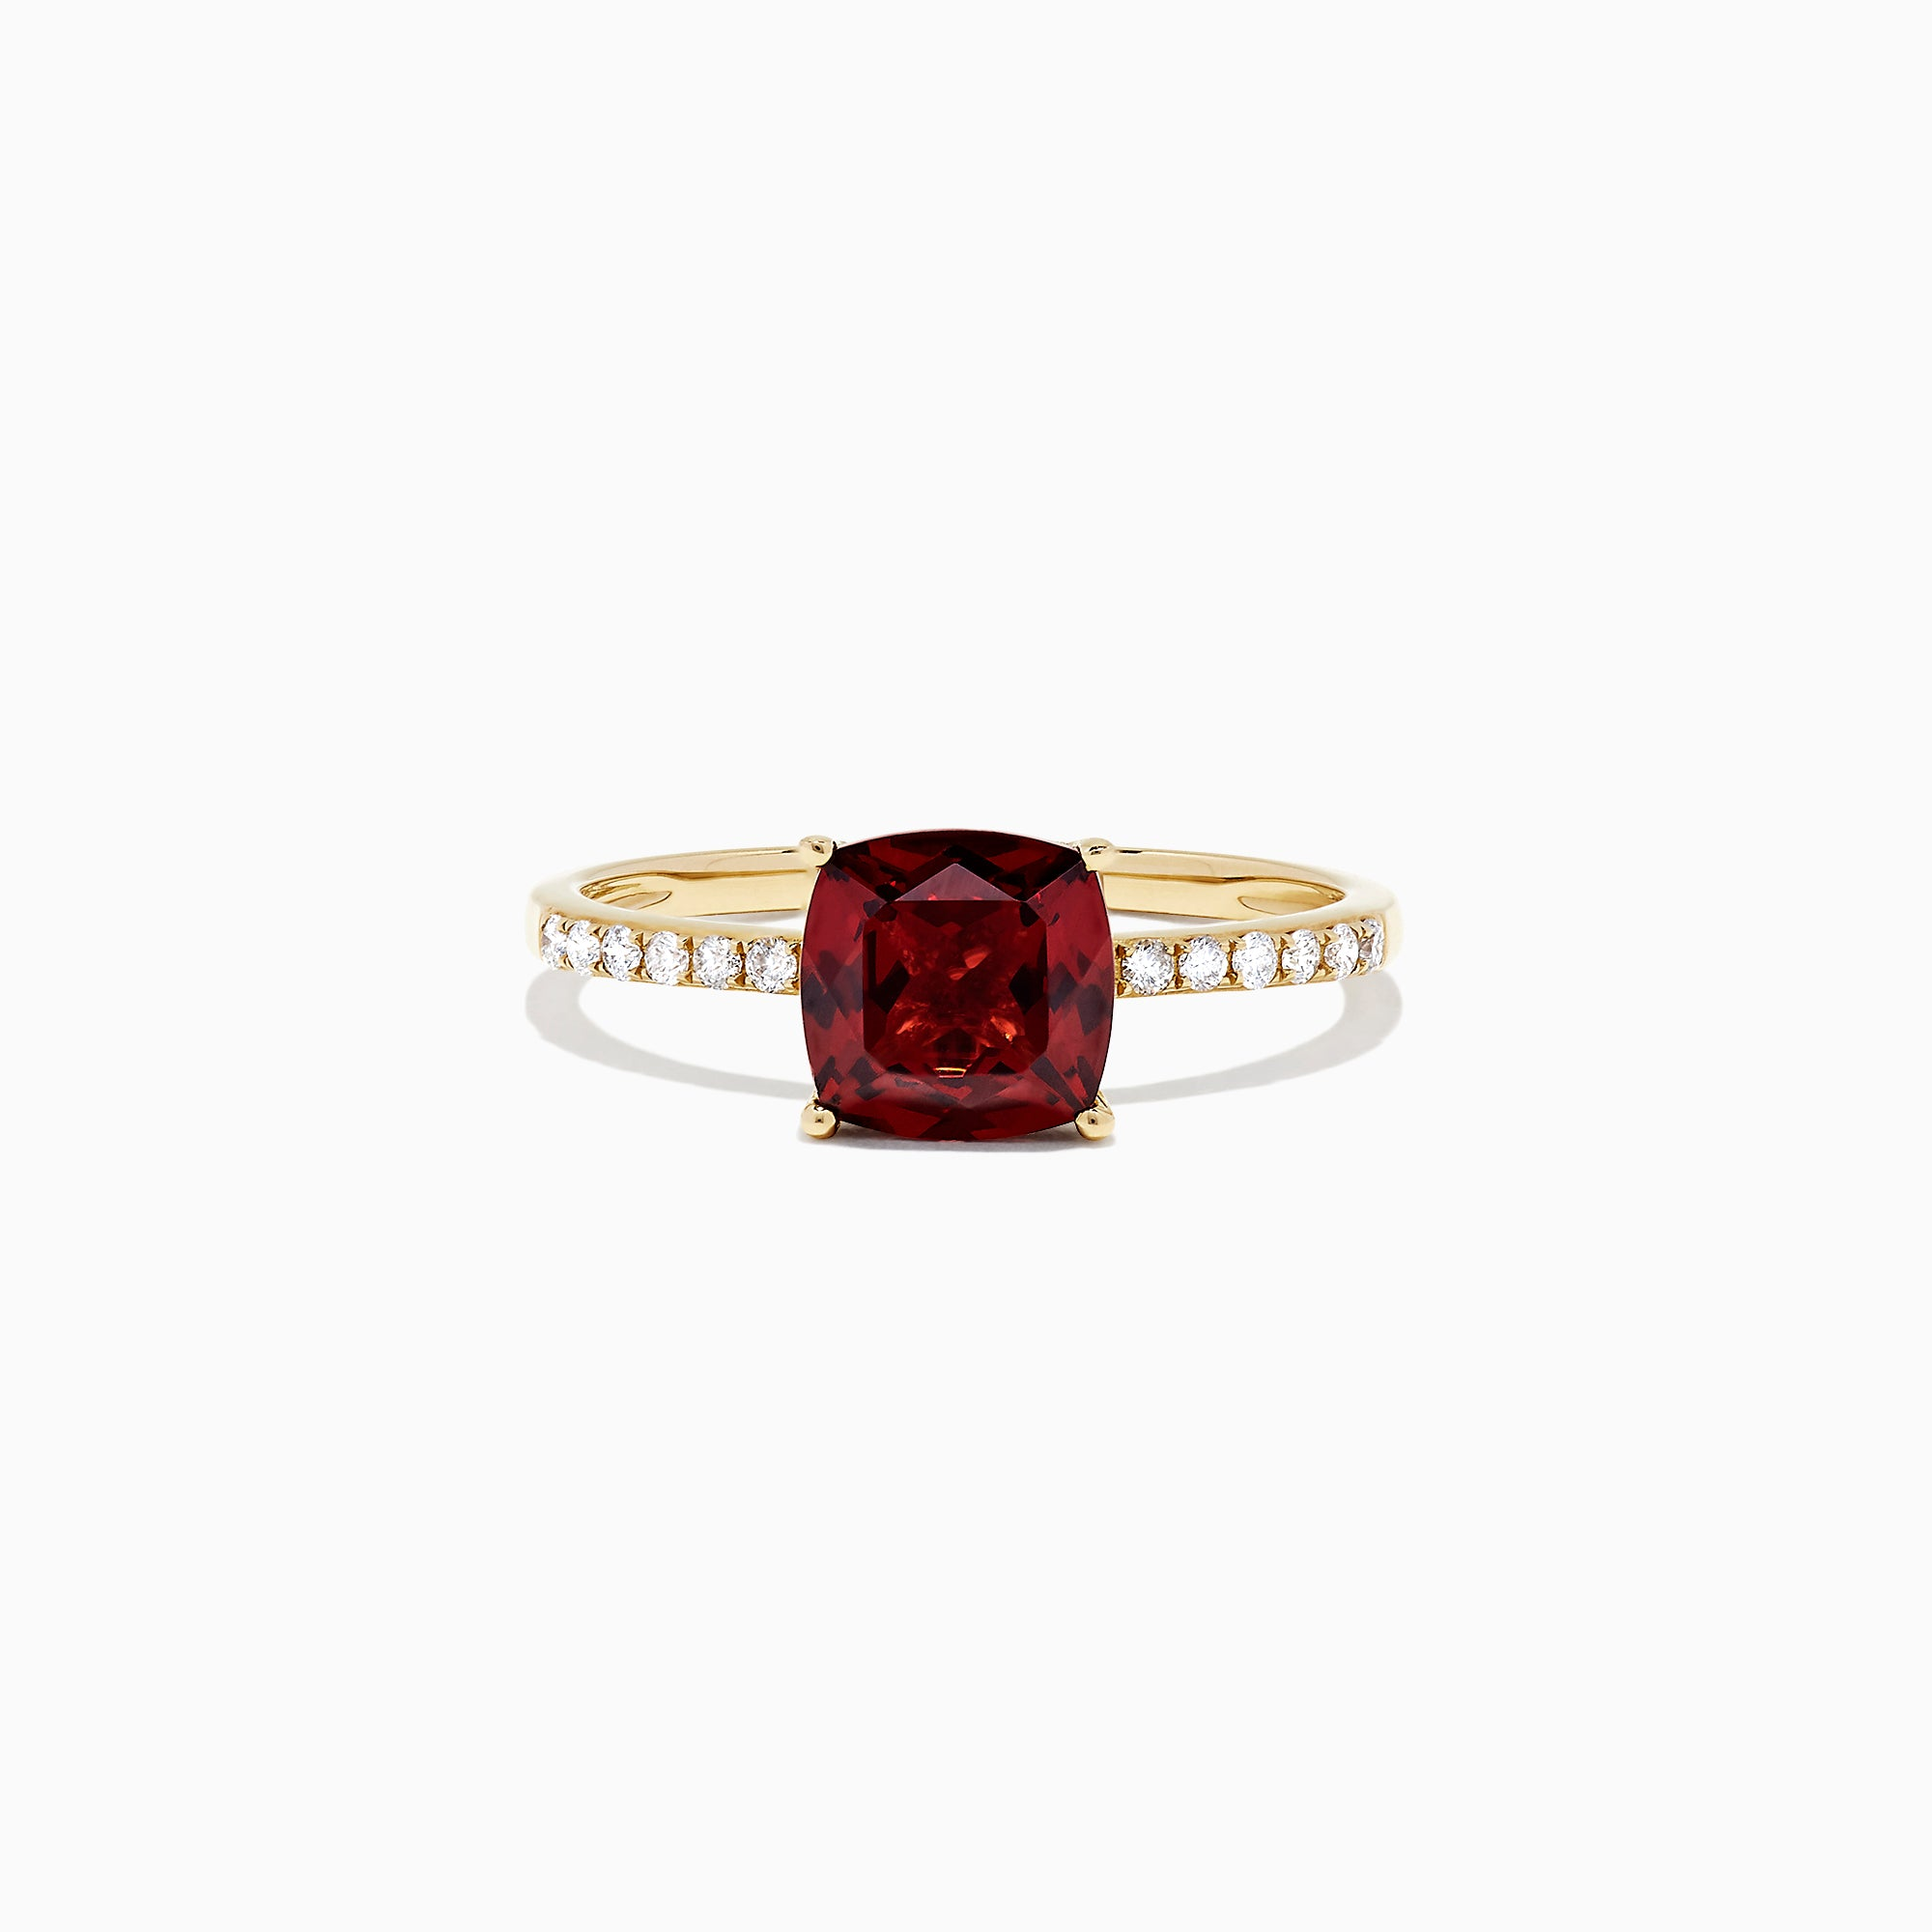 Effy Bordeaux 14K Yellow Gold Garnet and Diamond Ring, 1.66 TCW